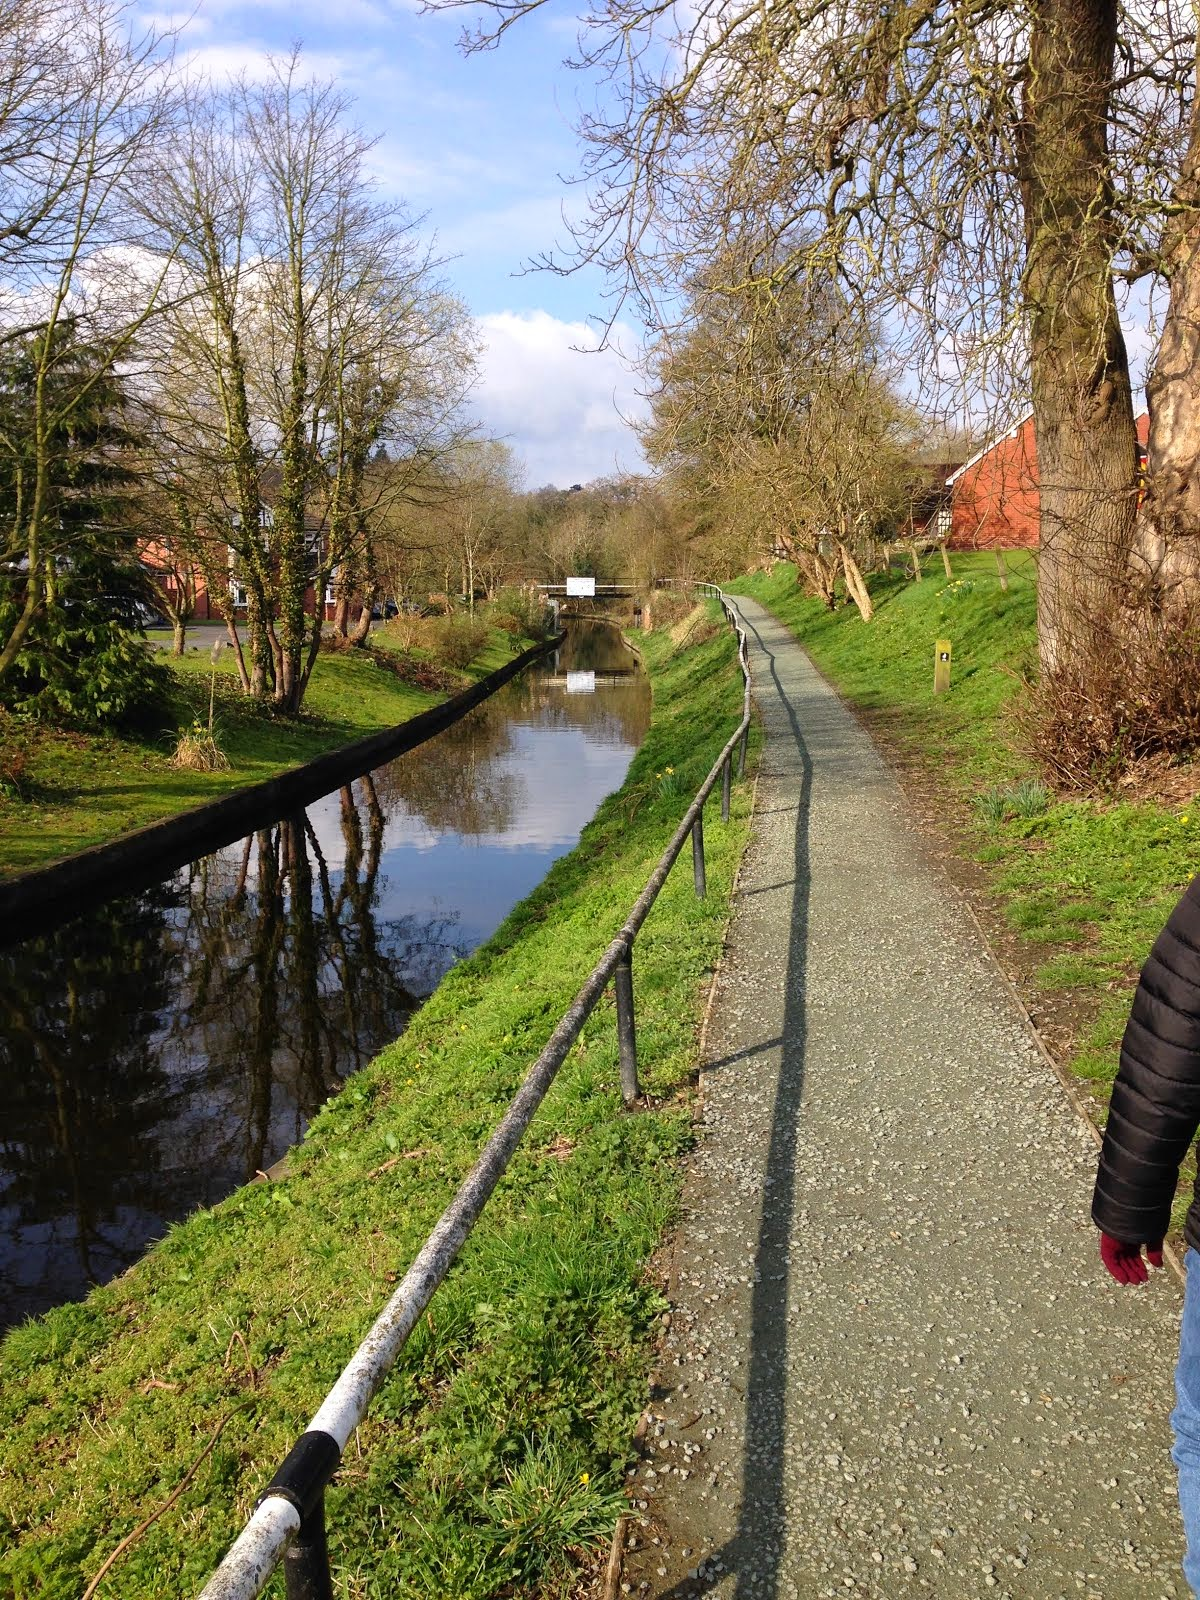 The Canals of England and Wales